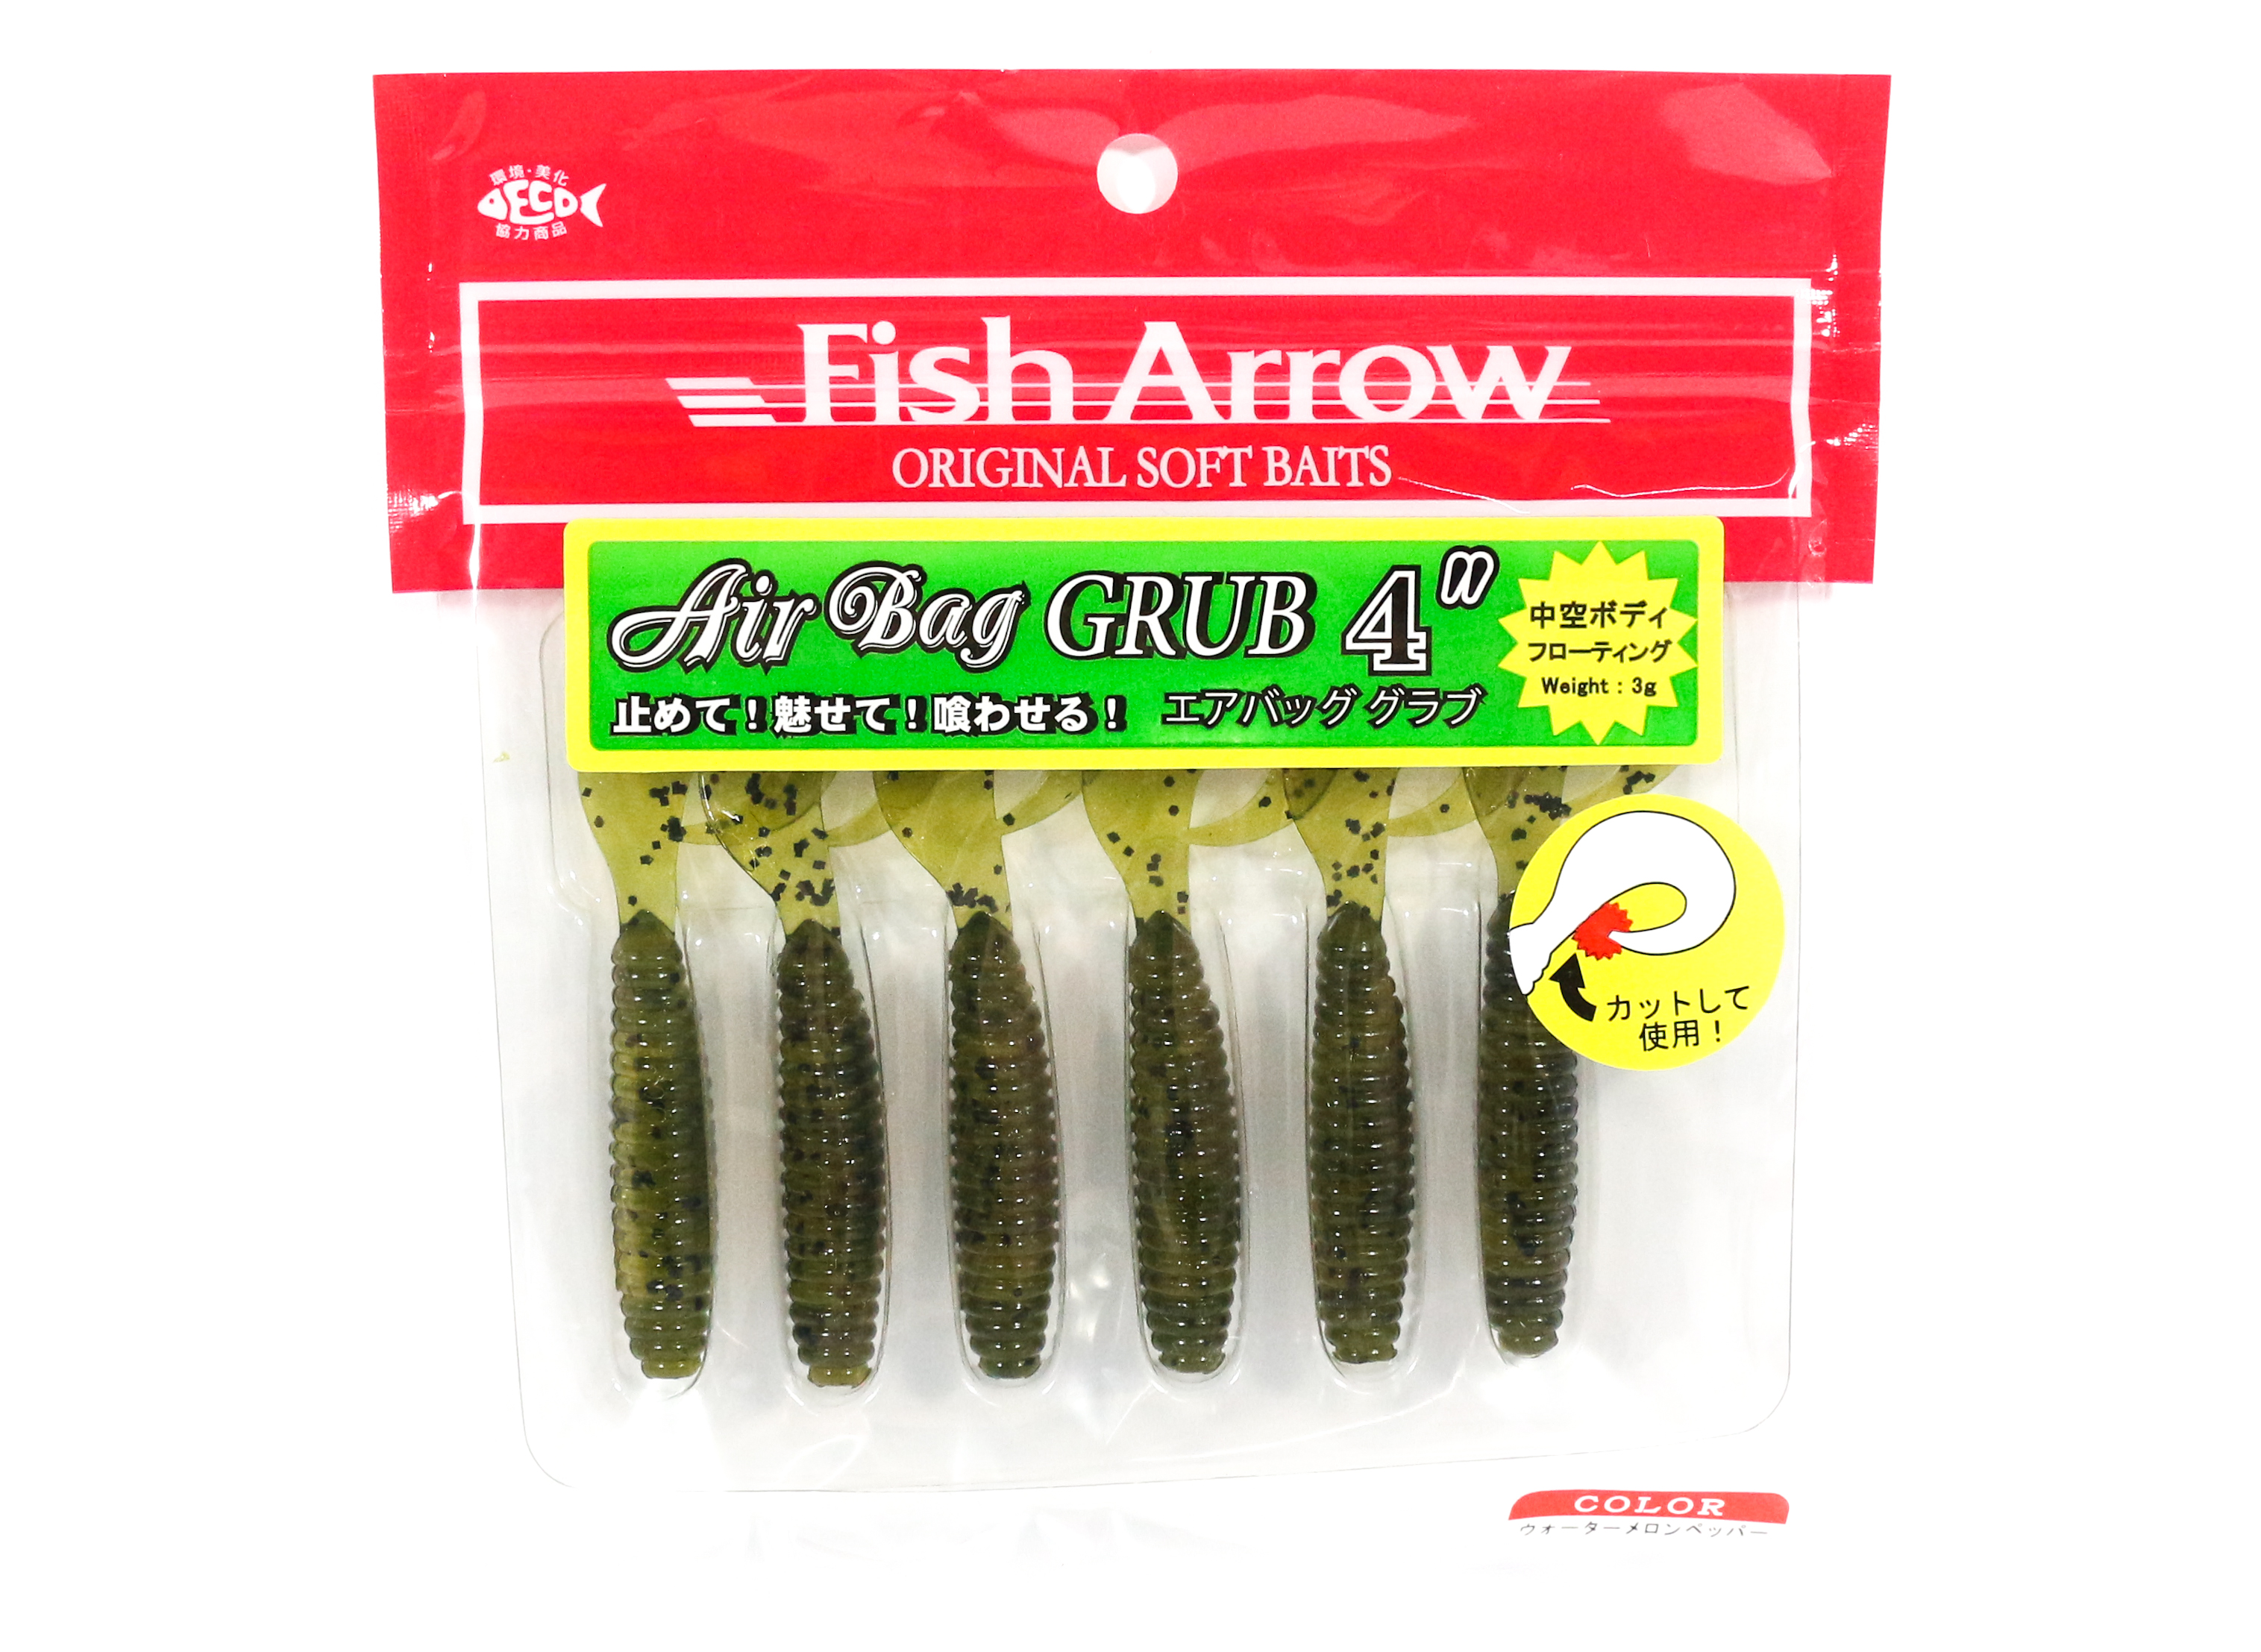 Fish Arrow Soft Lure Air Bag Grub 4 Inch 6 Piece per pack #02 (9358)